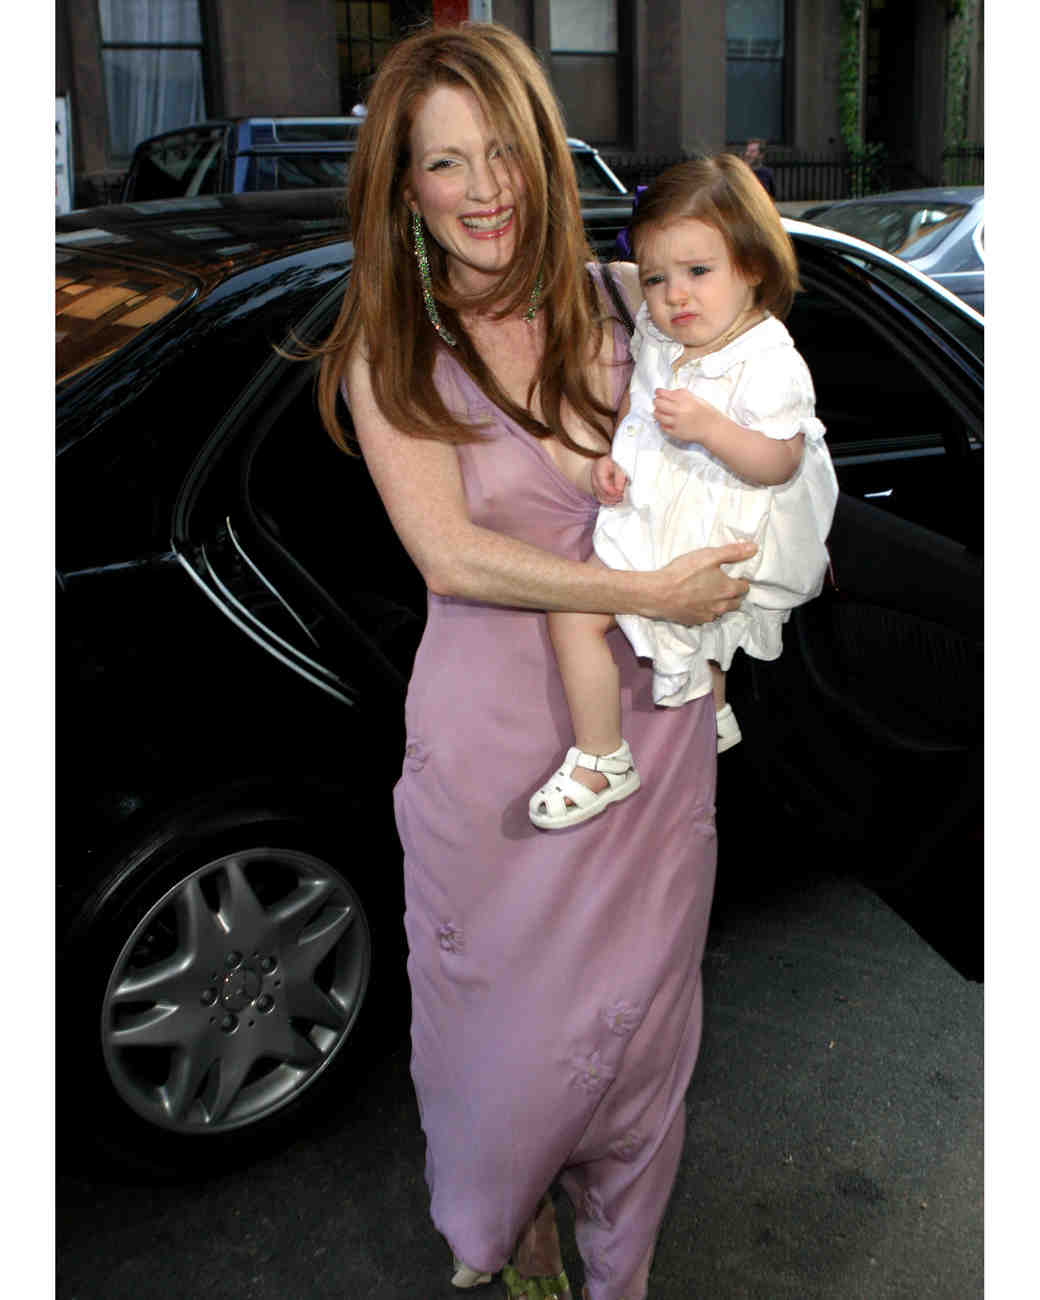 celebrity-pink-wedding-dresses-julianne-moore-gettyimages-182318326-0815.jpg